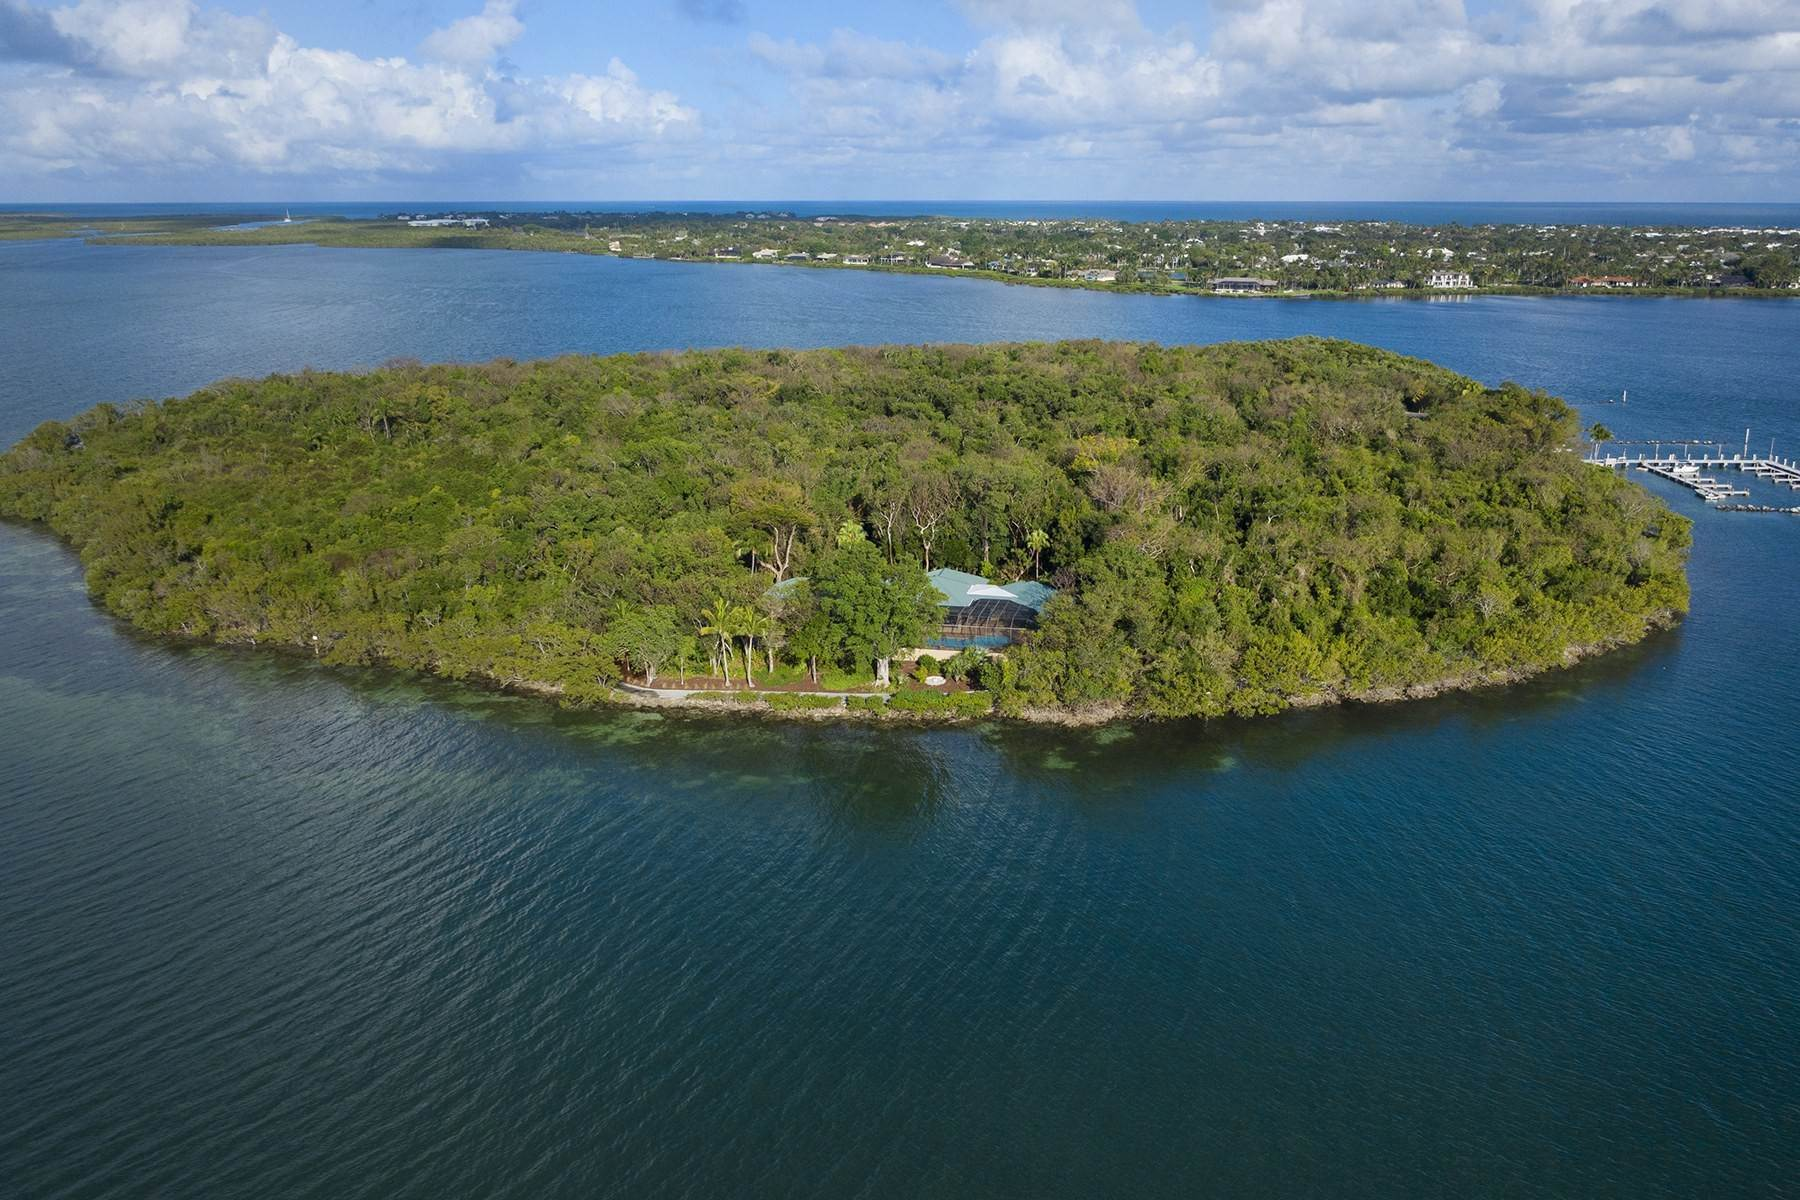 3. Property for Sale at Pumpkin Key - Private Island, Key Largo, FL Pumpkin Key - Private Island Key Largo, Florida 33037 United States